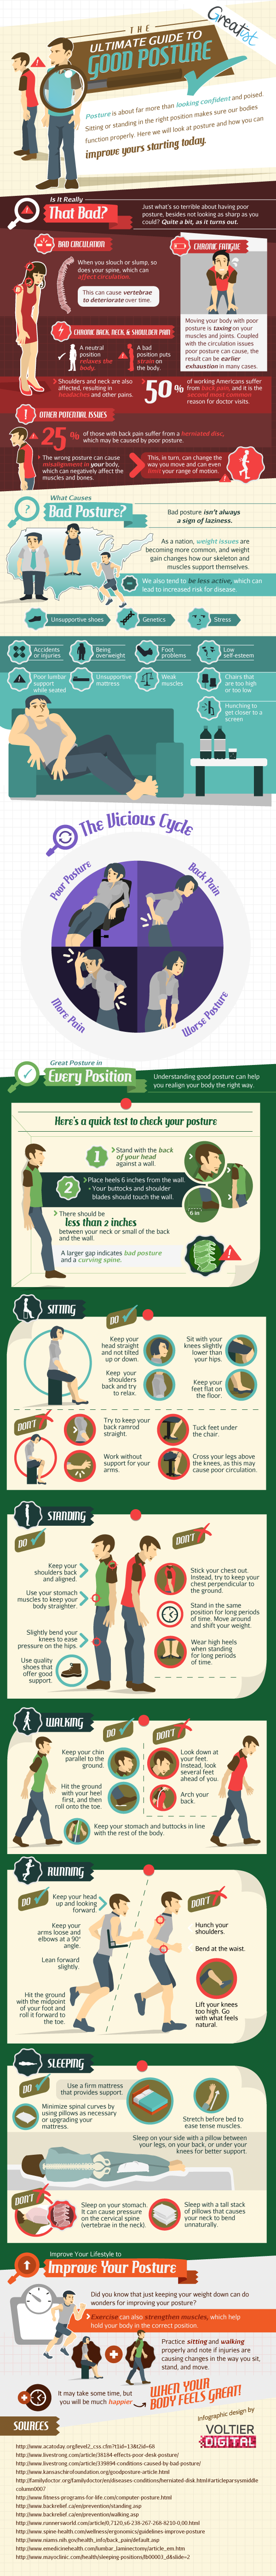 Source:http://greatist.com/health/ultimate-guide-good-posture